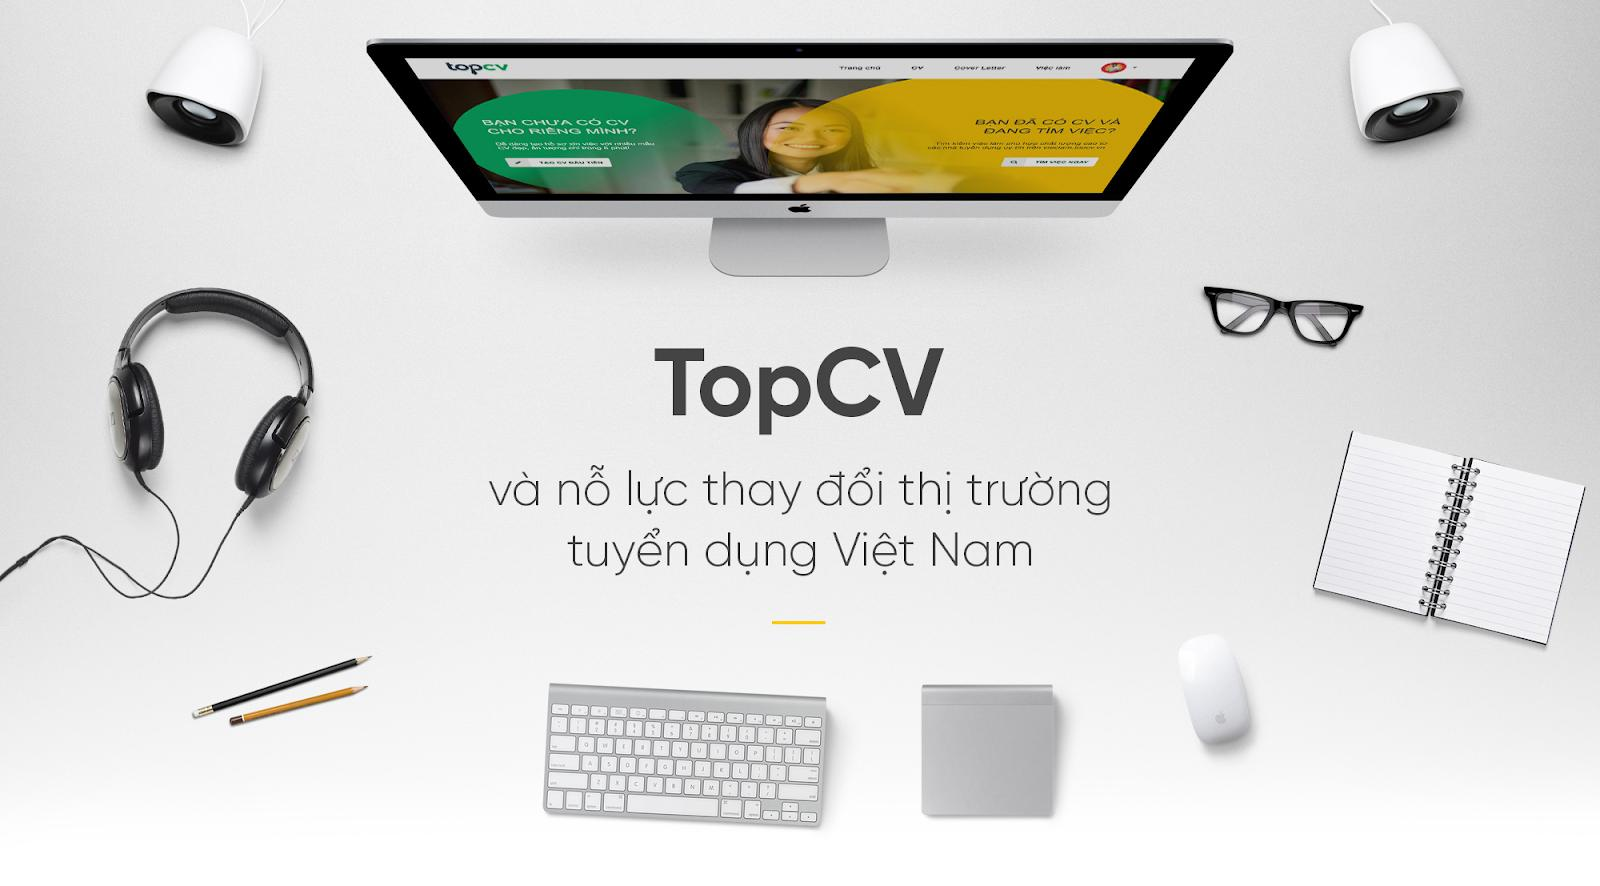 voh.com.vn.ung-dung-tim-viec-lam-anh-8